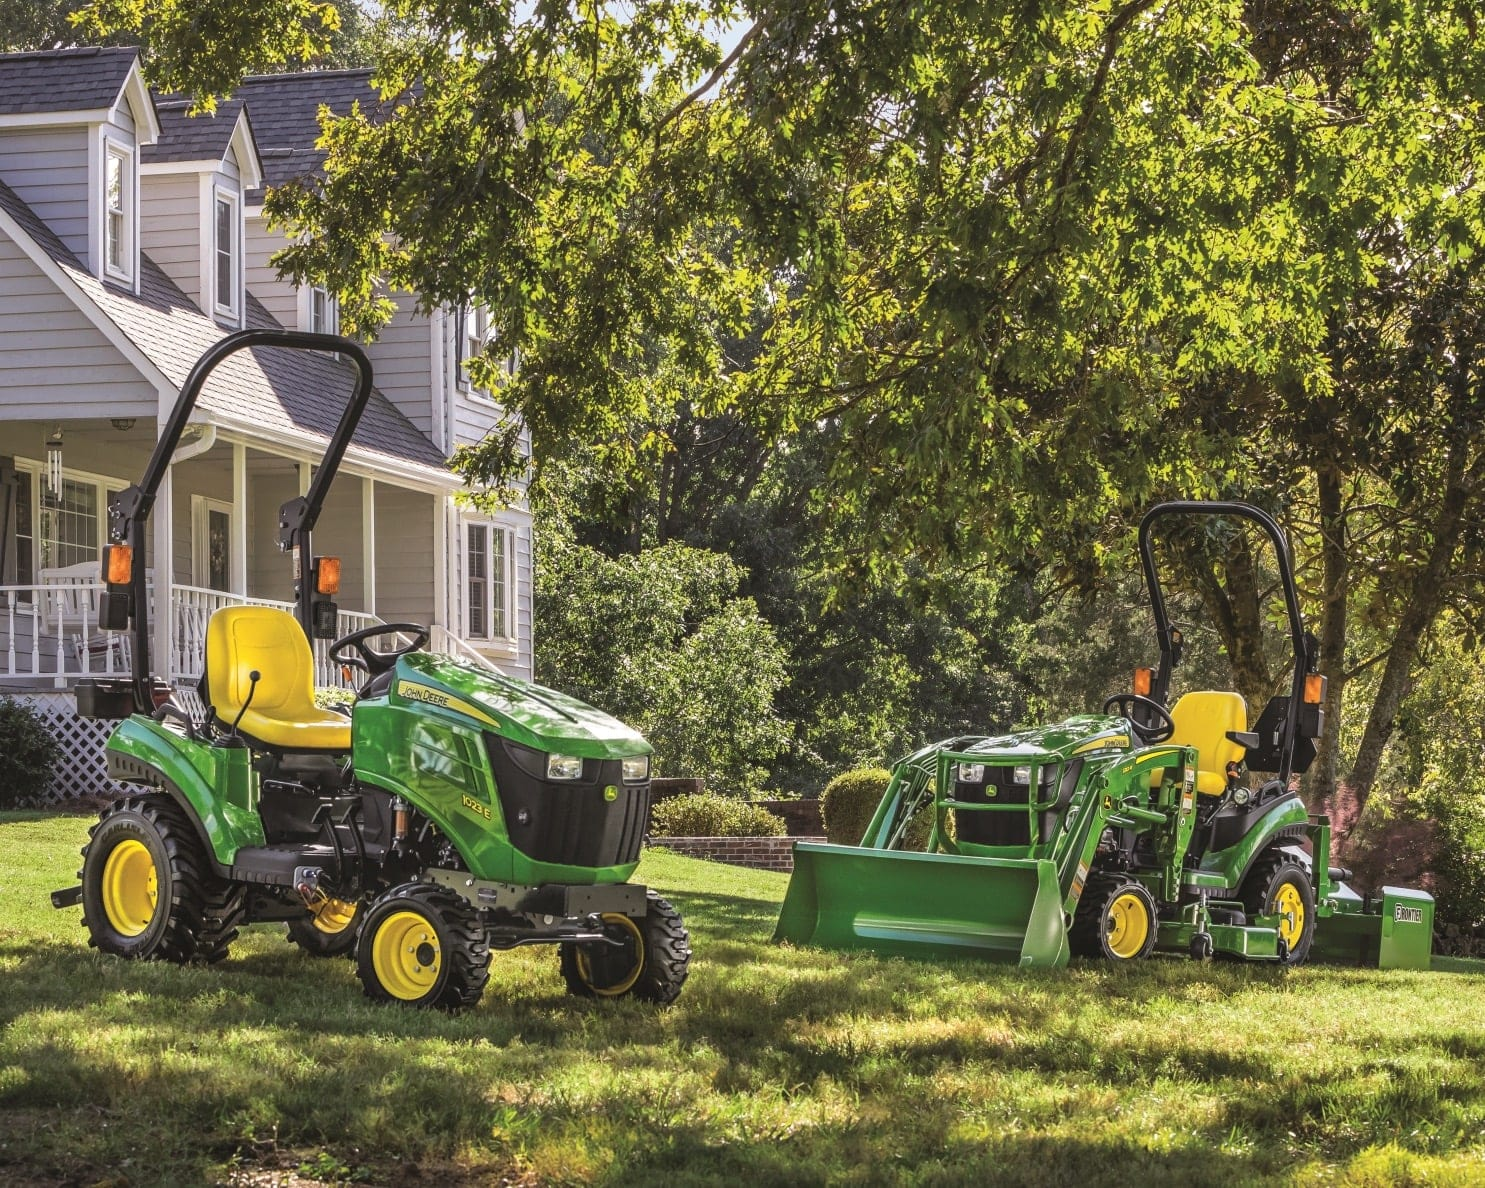 Sub-Compact Tractors: Getting to Know the 1 Series